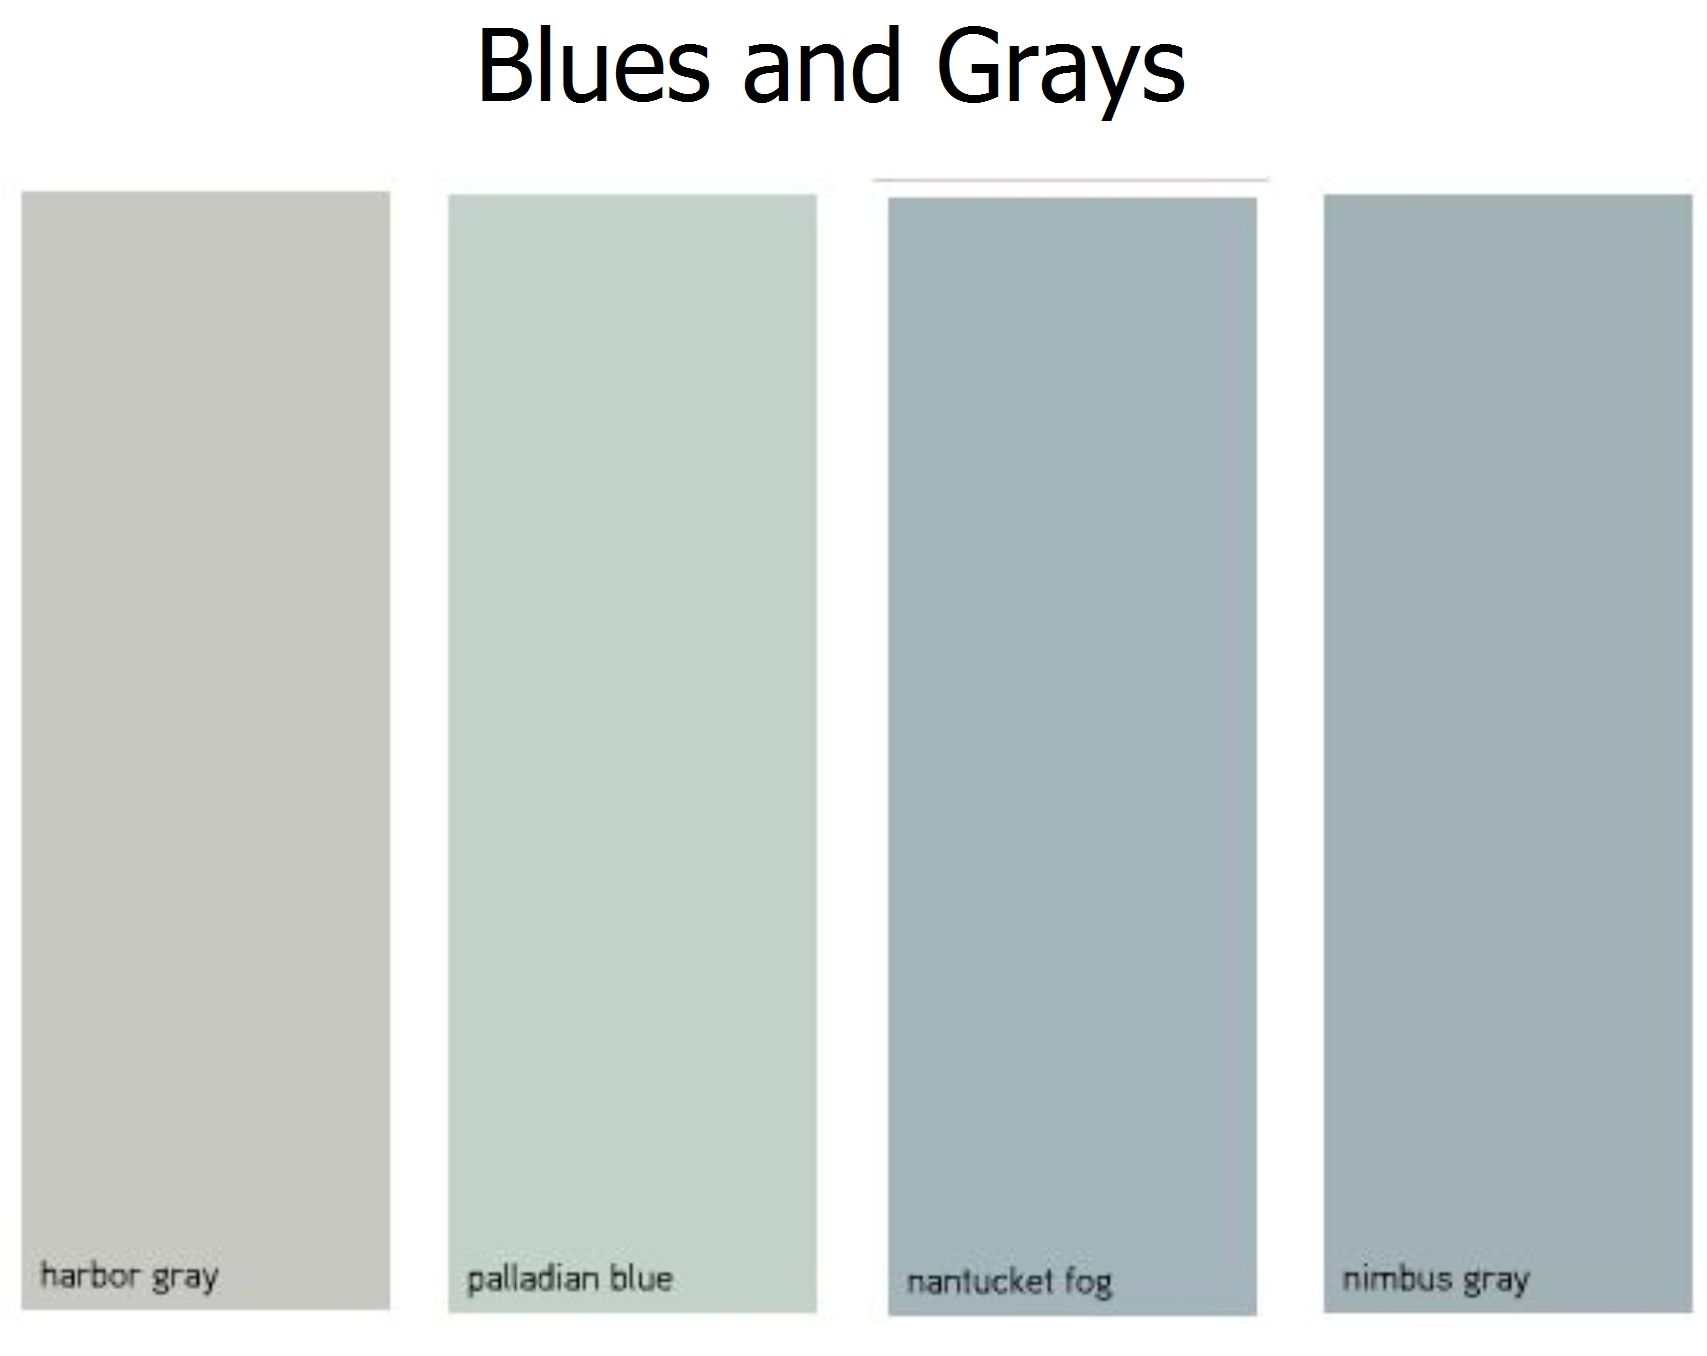 Nimbus Gray Would Be An Excellent Color To Paint The Entire House Harbor Is Another That May Of Use But I M Not Sure How